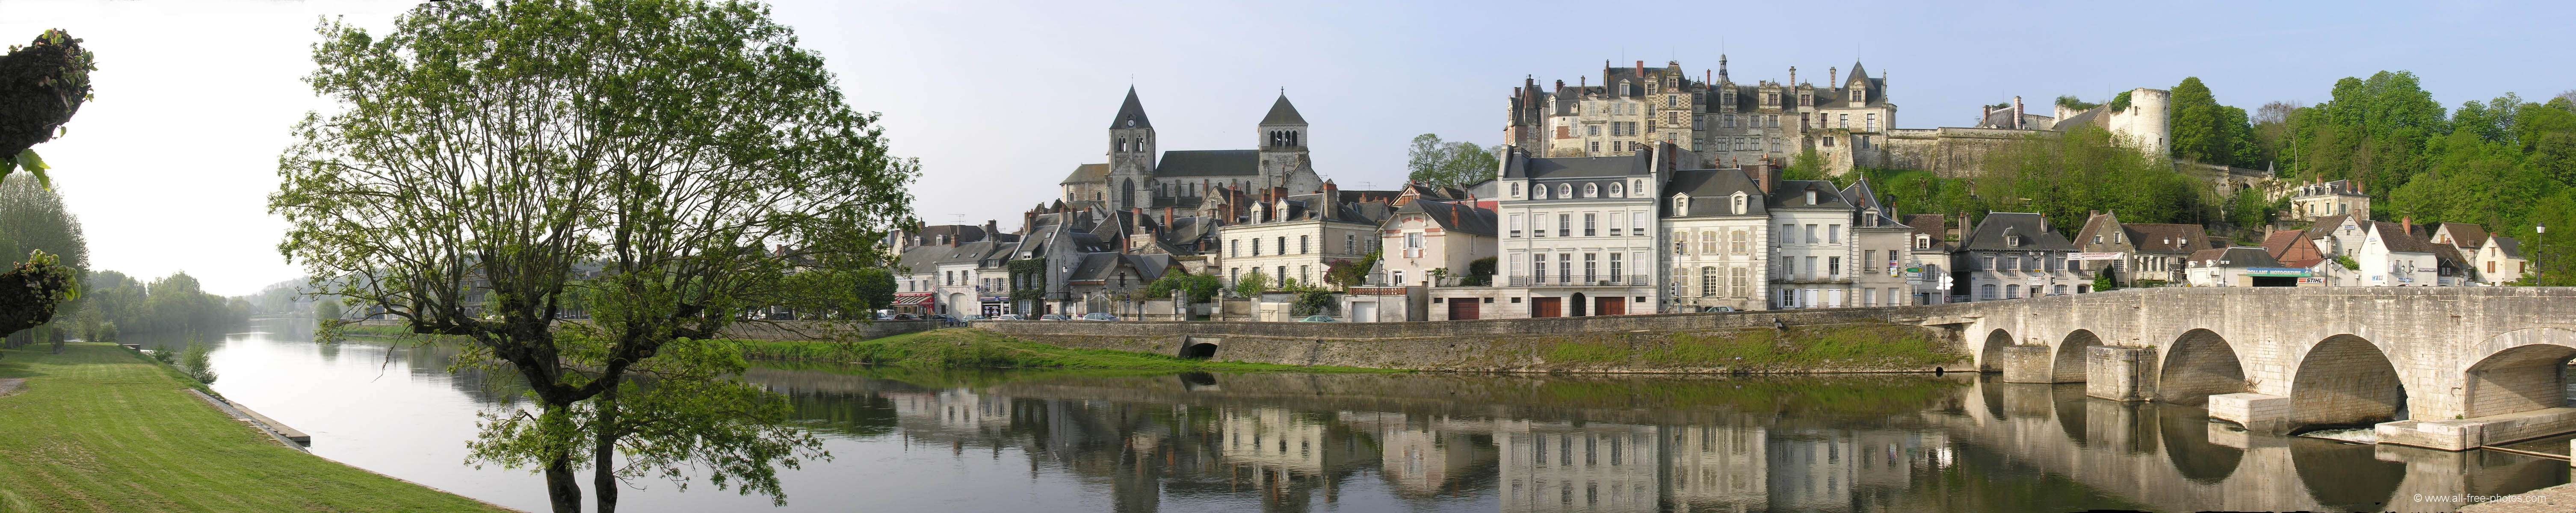 The Cher - Saint Aignan sur Cher - France